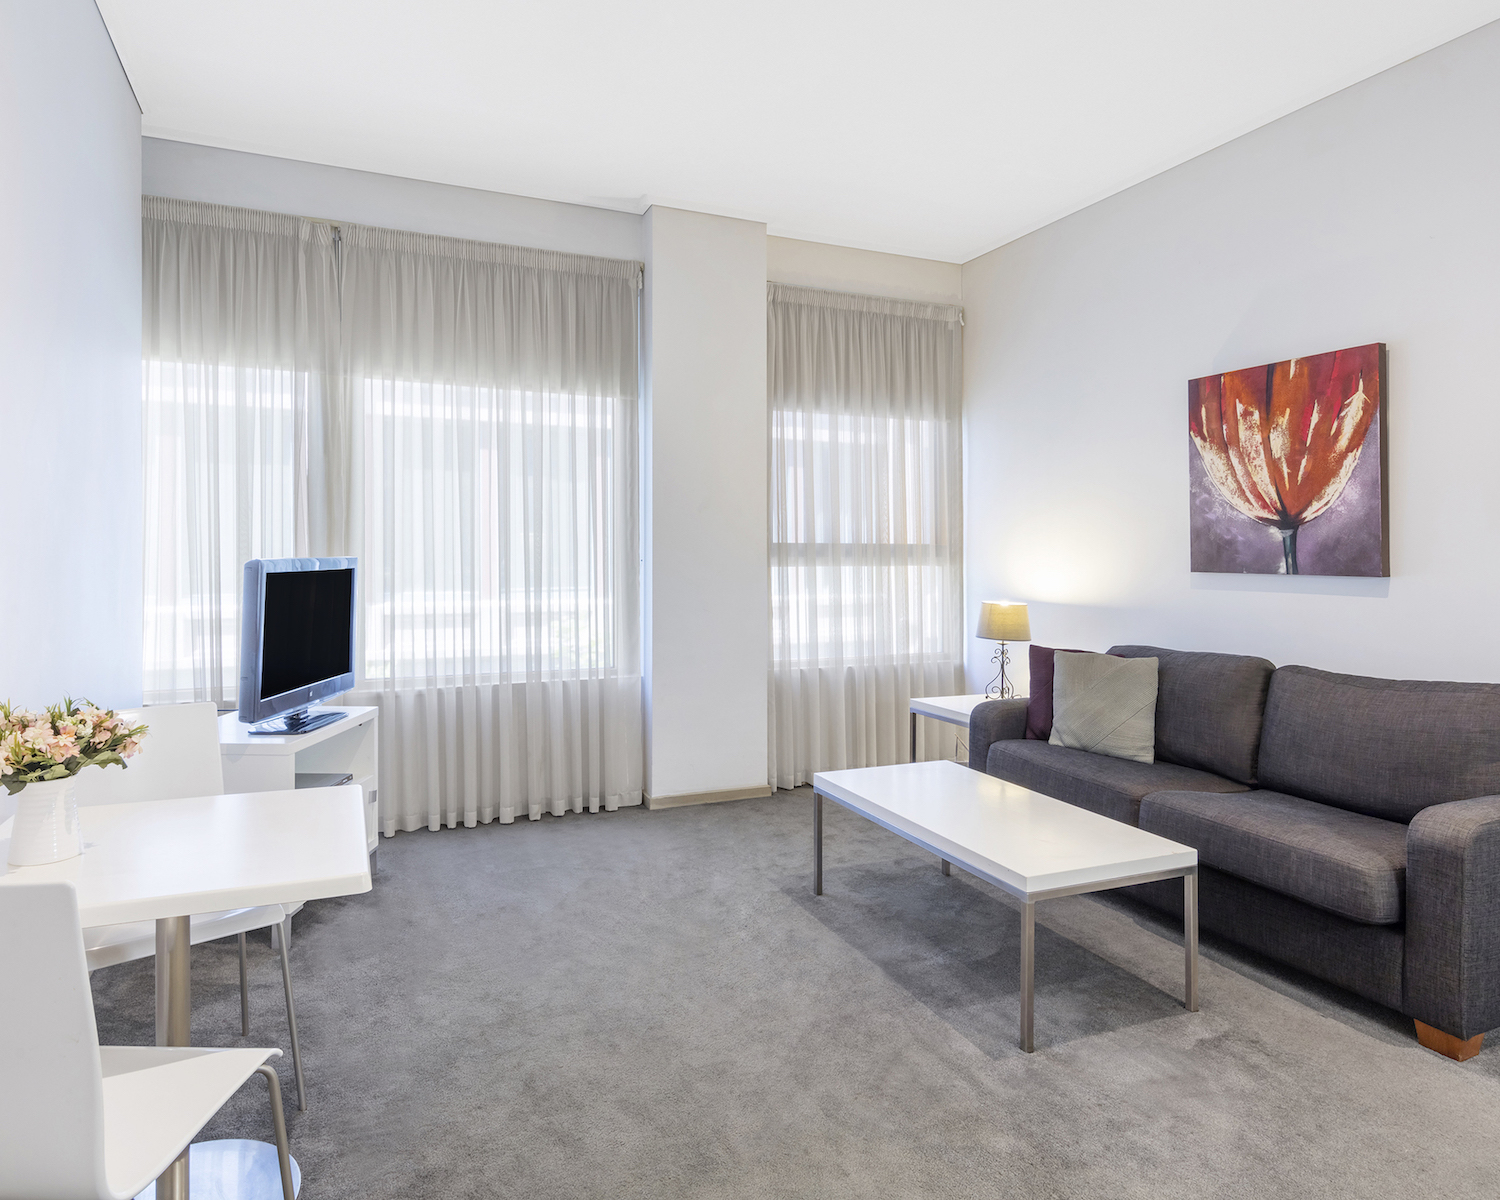 riverside apartments melbourne vic accommodation one bedroom apartment annex tower3 1